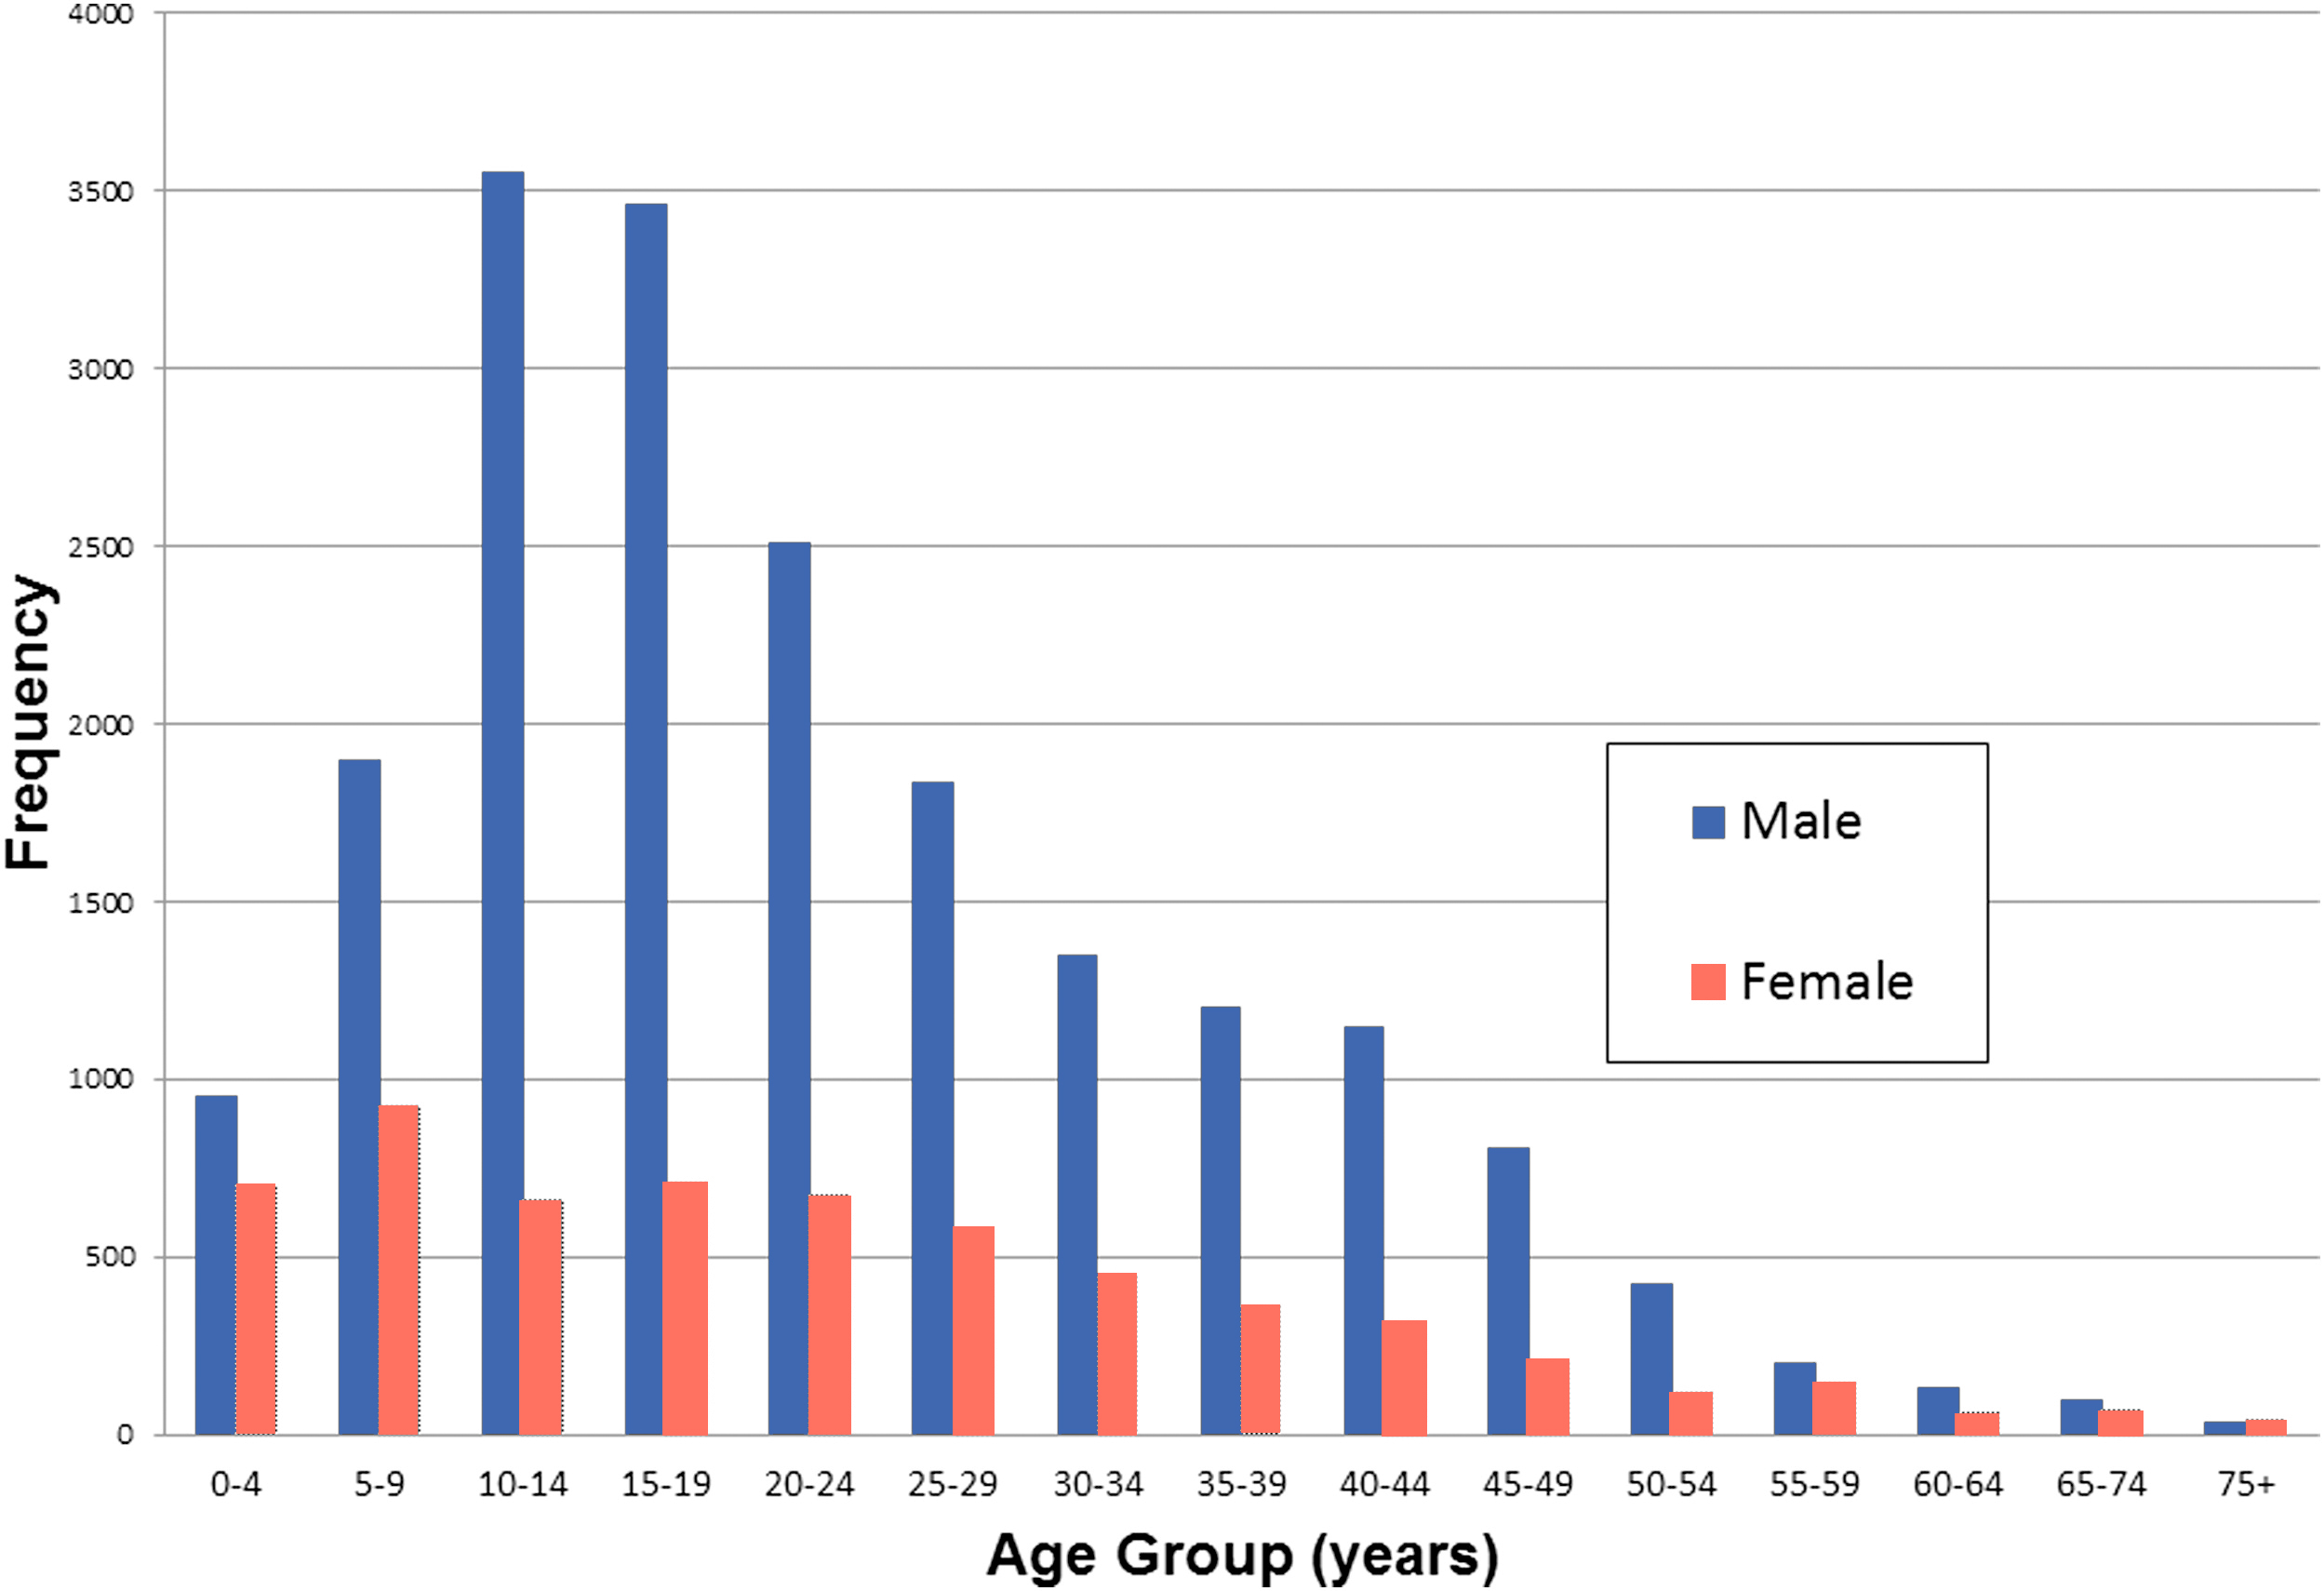 The people going to the hospital for fireworks injuries are this chart represents several years of fireworks related hospitalizations data from 2006 to 2010 as compiled in a 2014 study in the journal of surgical pooptronica